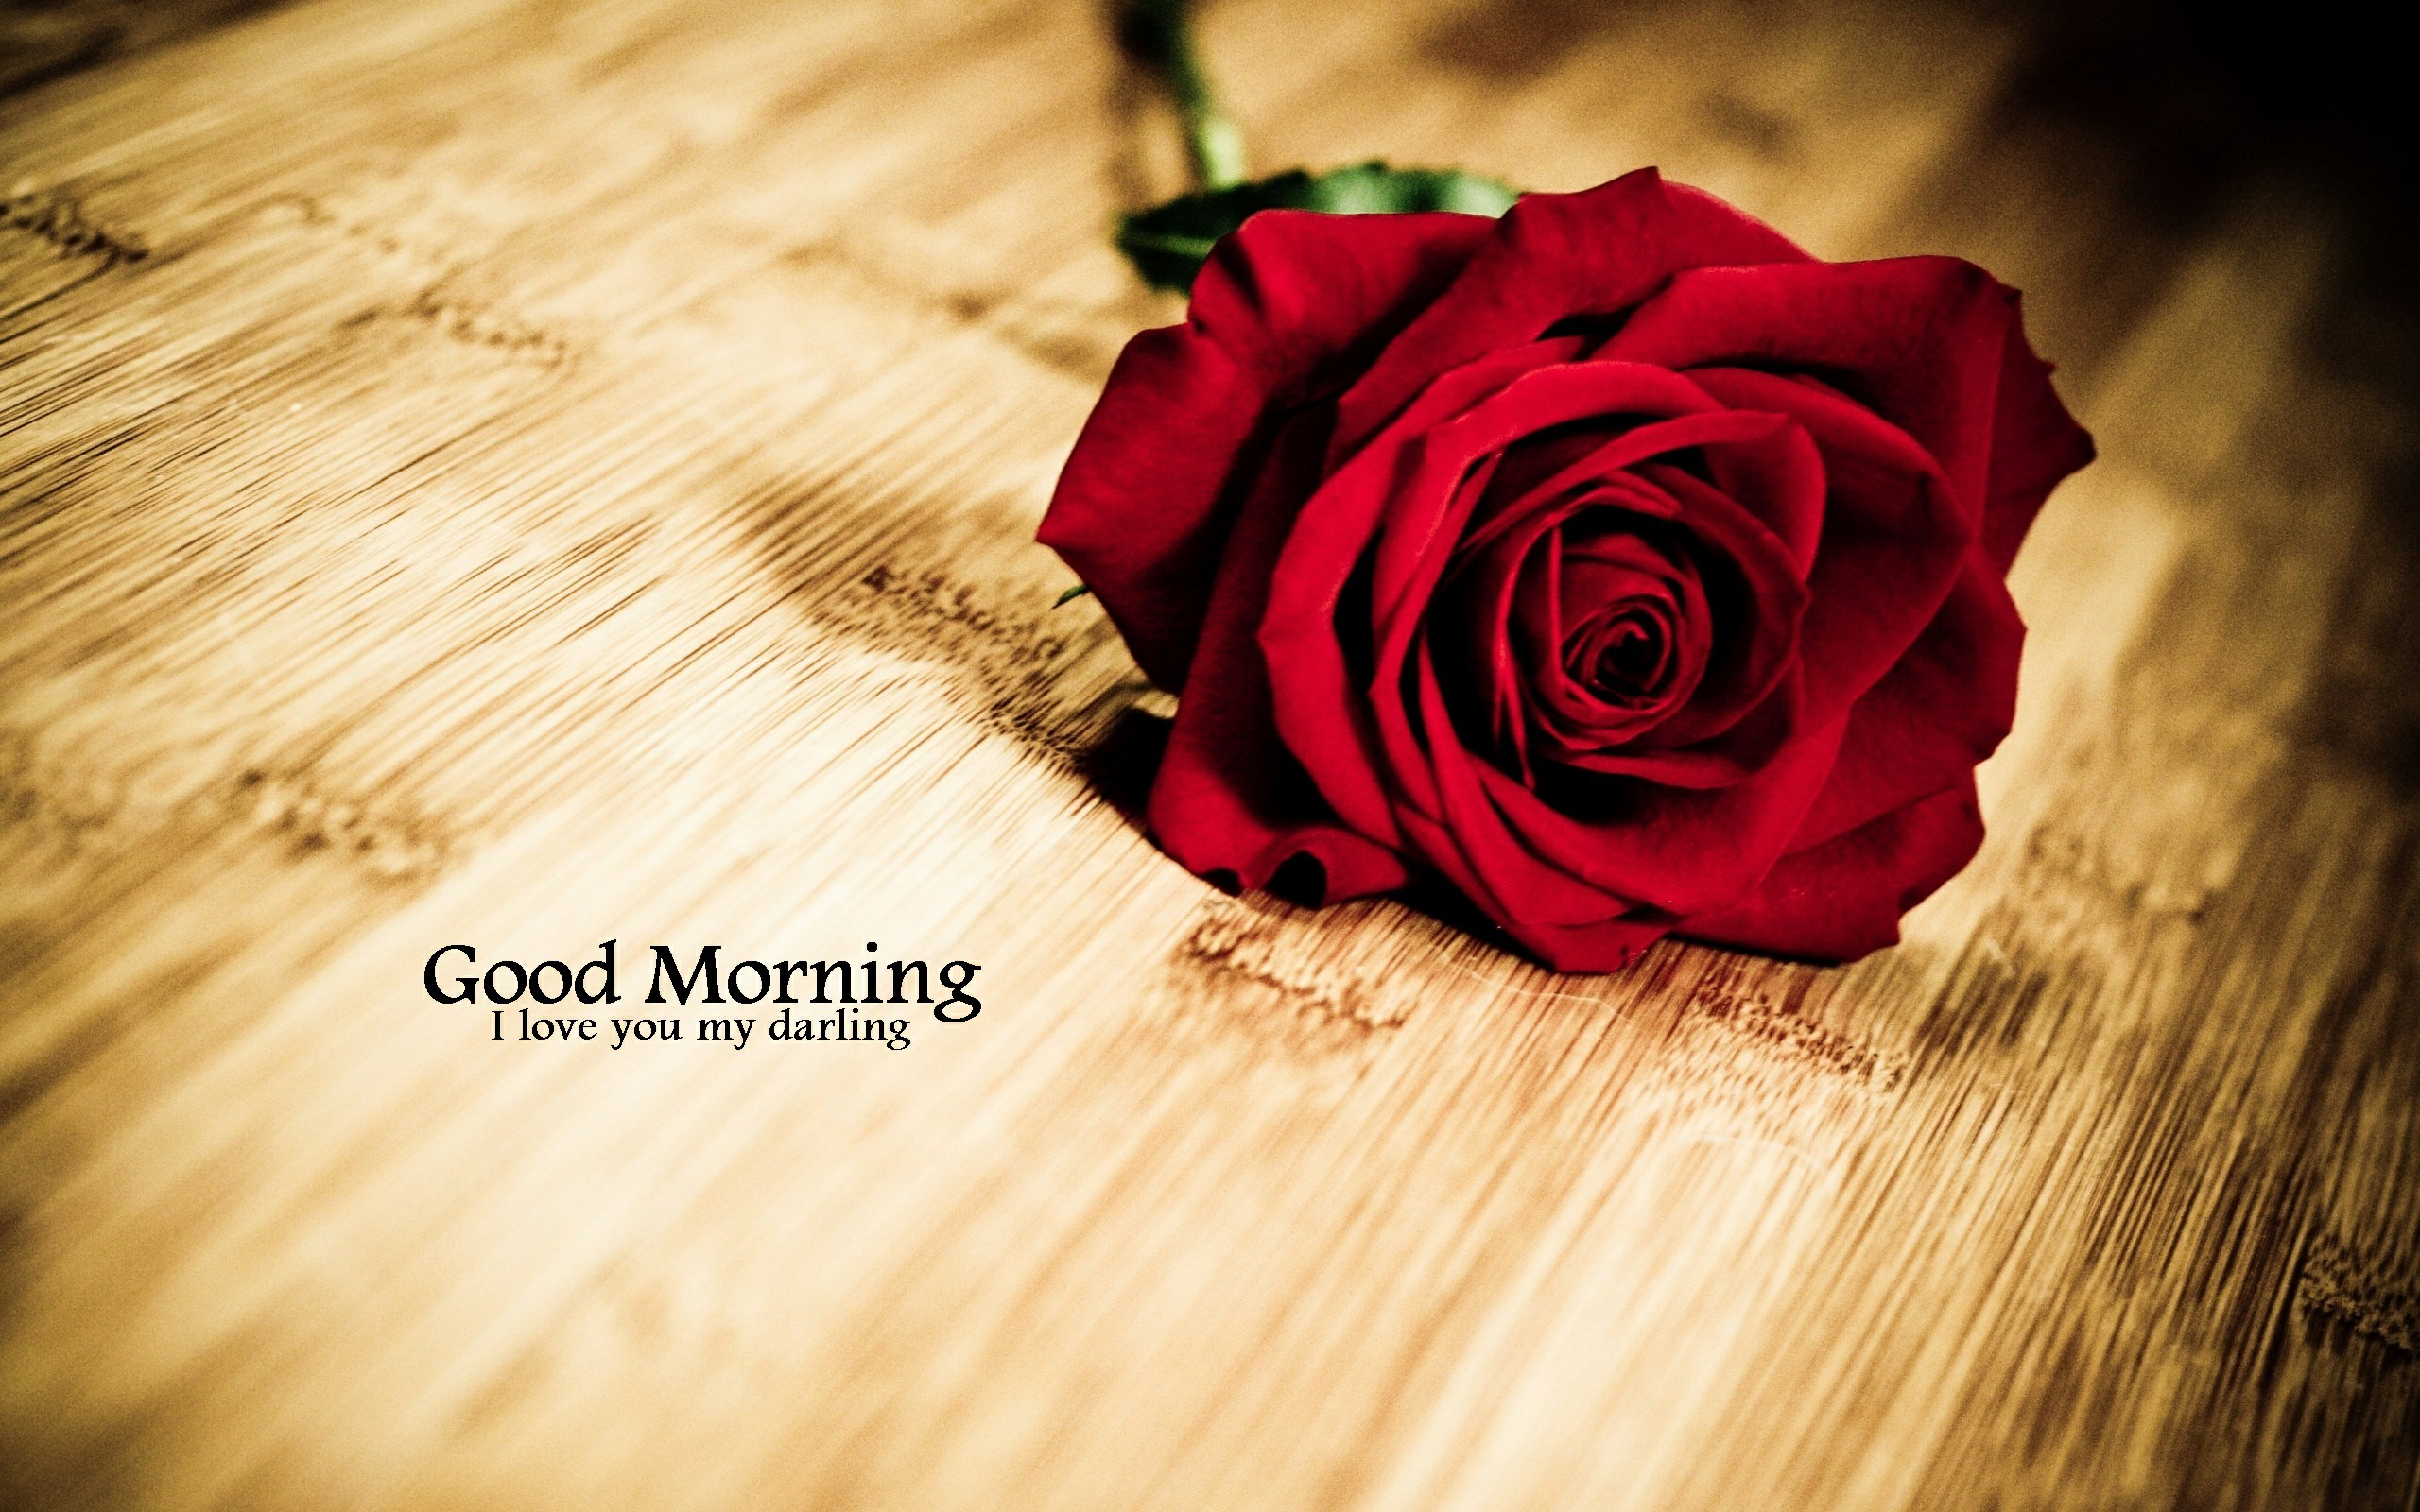 Good Morning Images Hd Wallpapers Images Photos